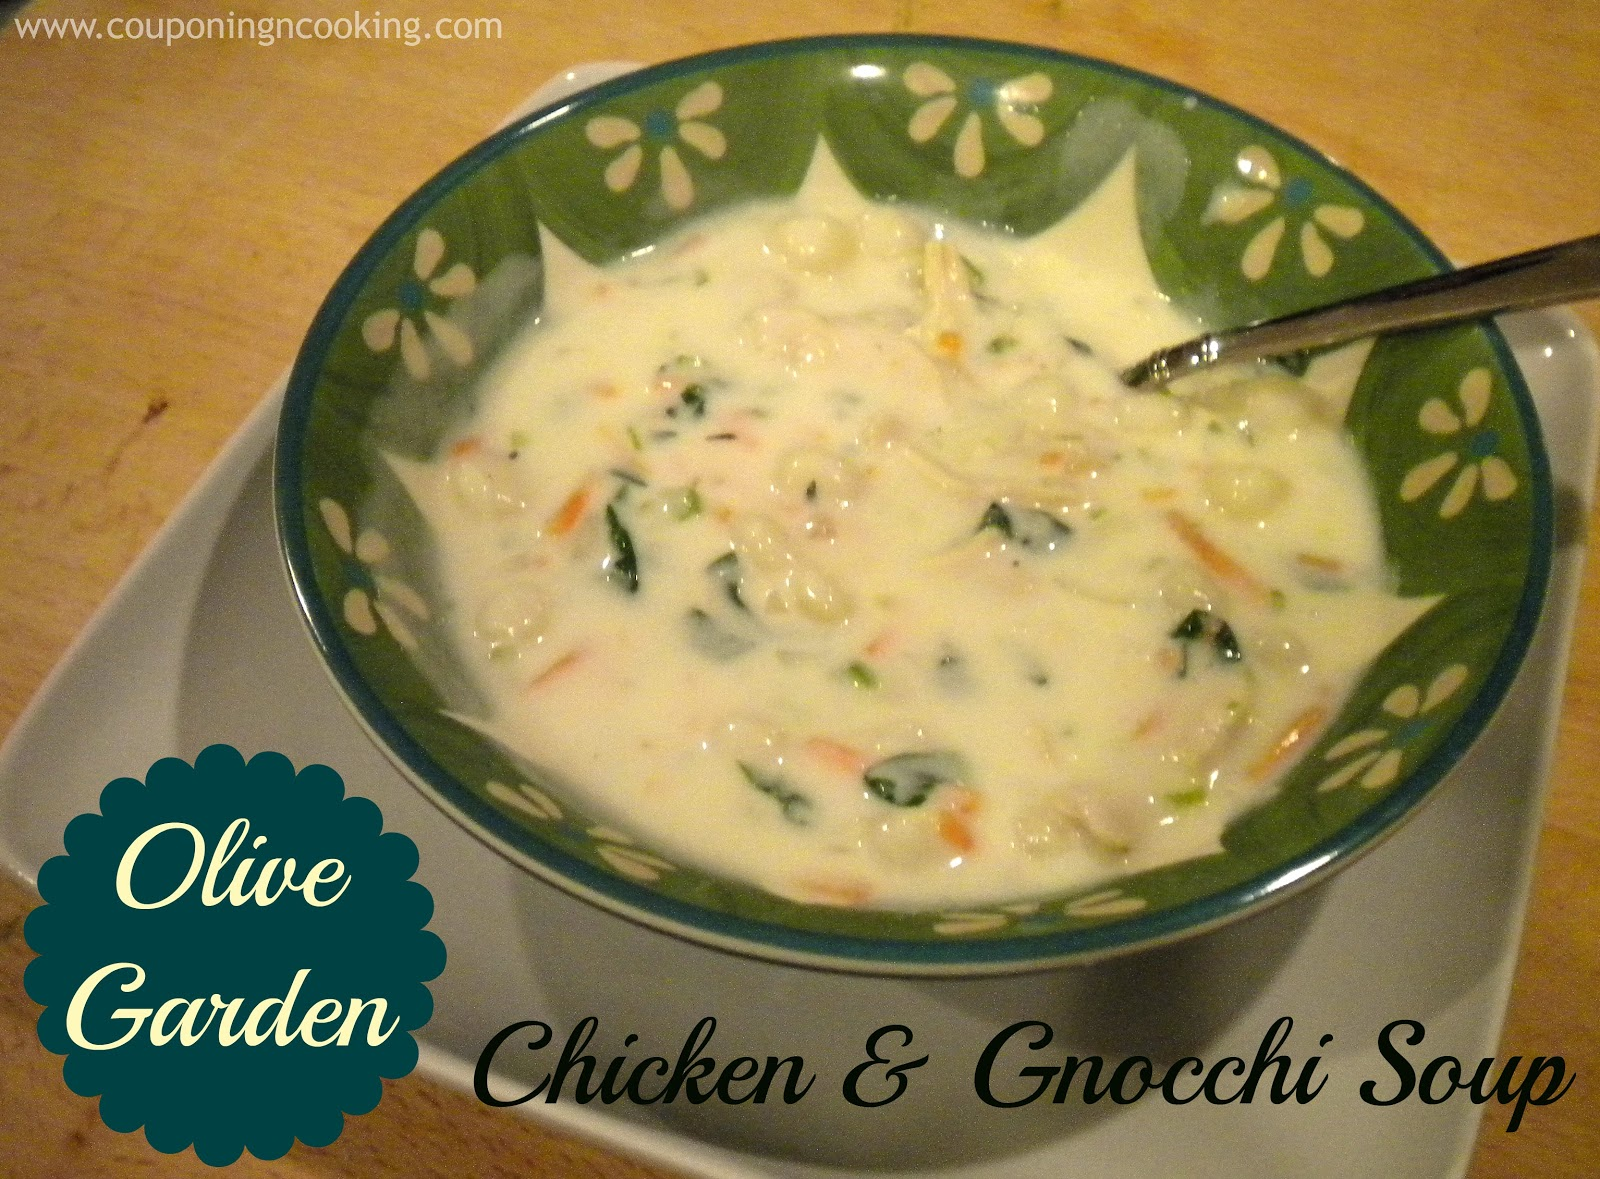 Couponing Cooking Olive Garden 39 S Chicken Gnocchi Soup